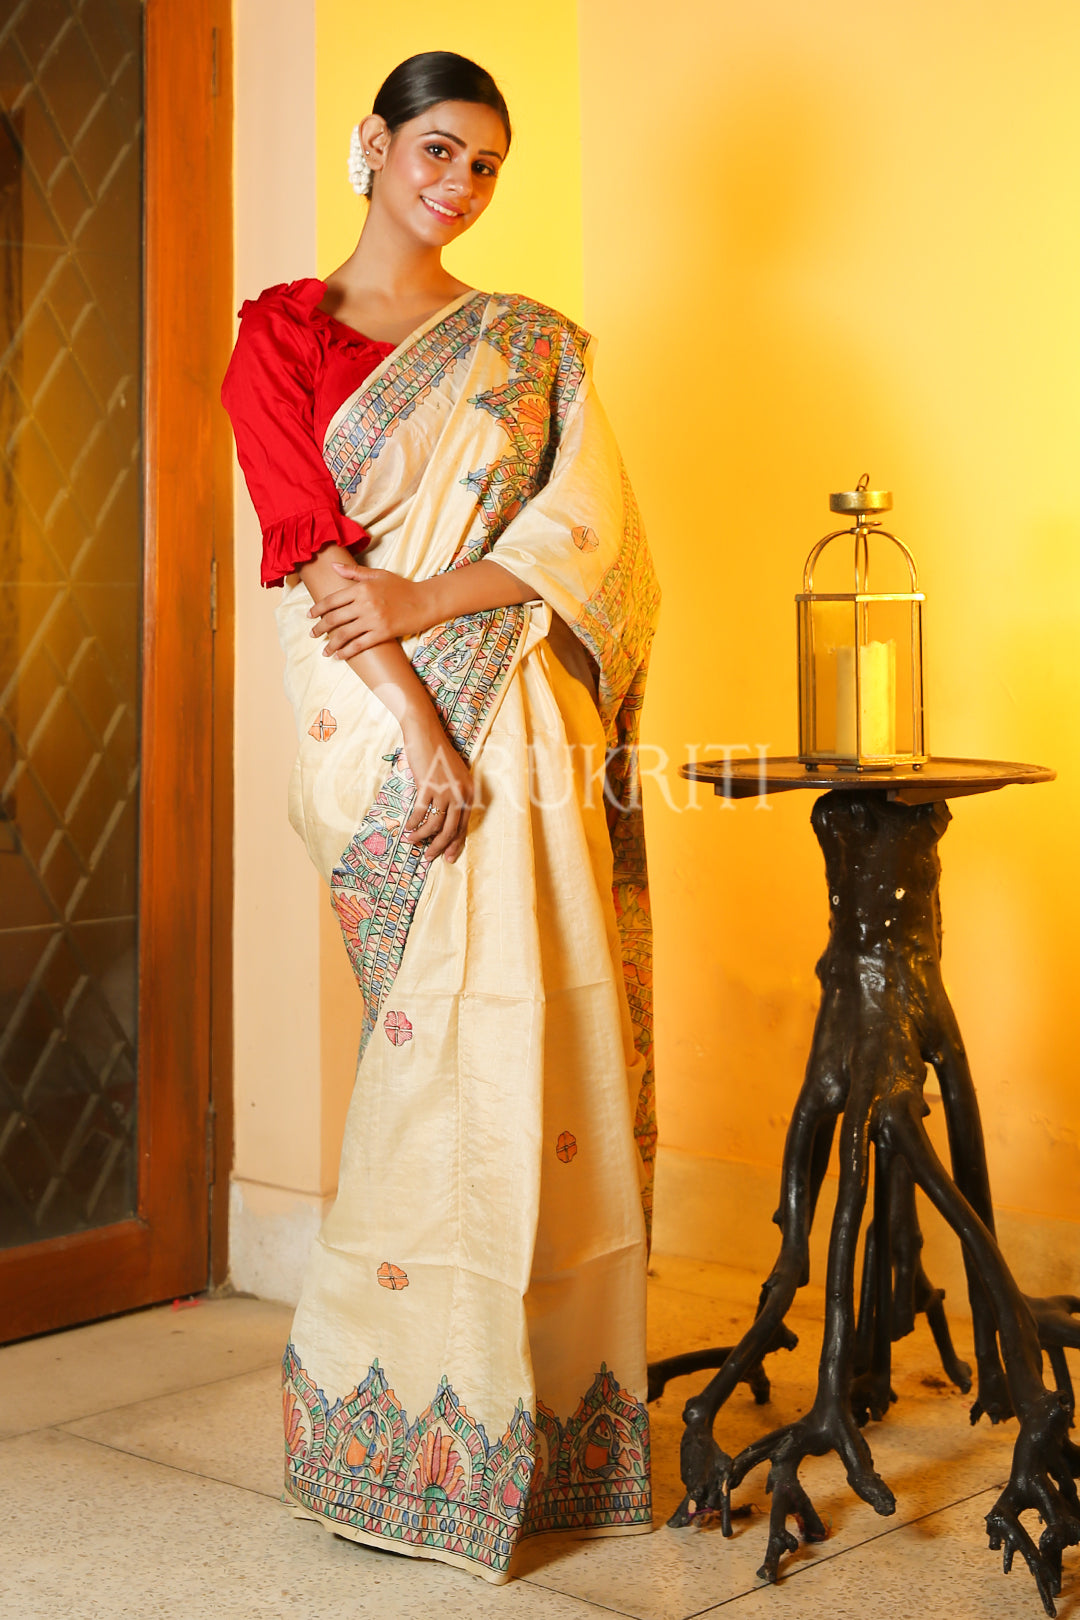 BEIGE TUSSAR SAREE WITH MULTICOLORED MADHUBANI PAINT